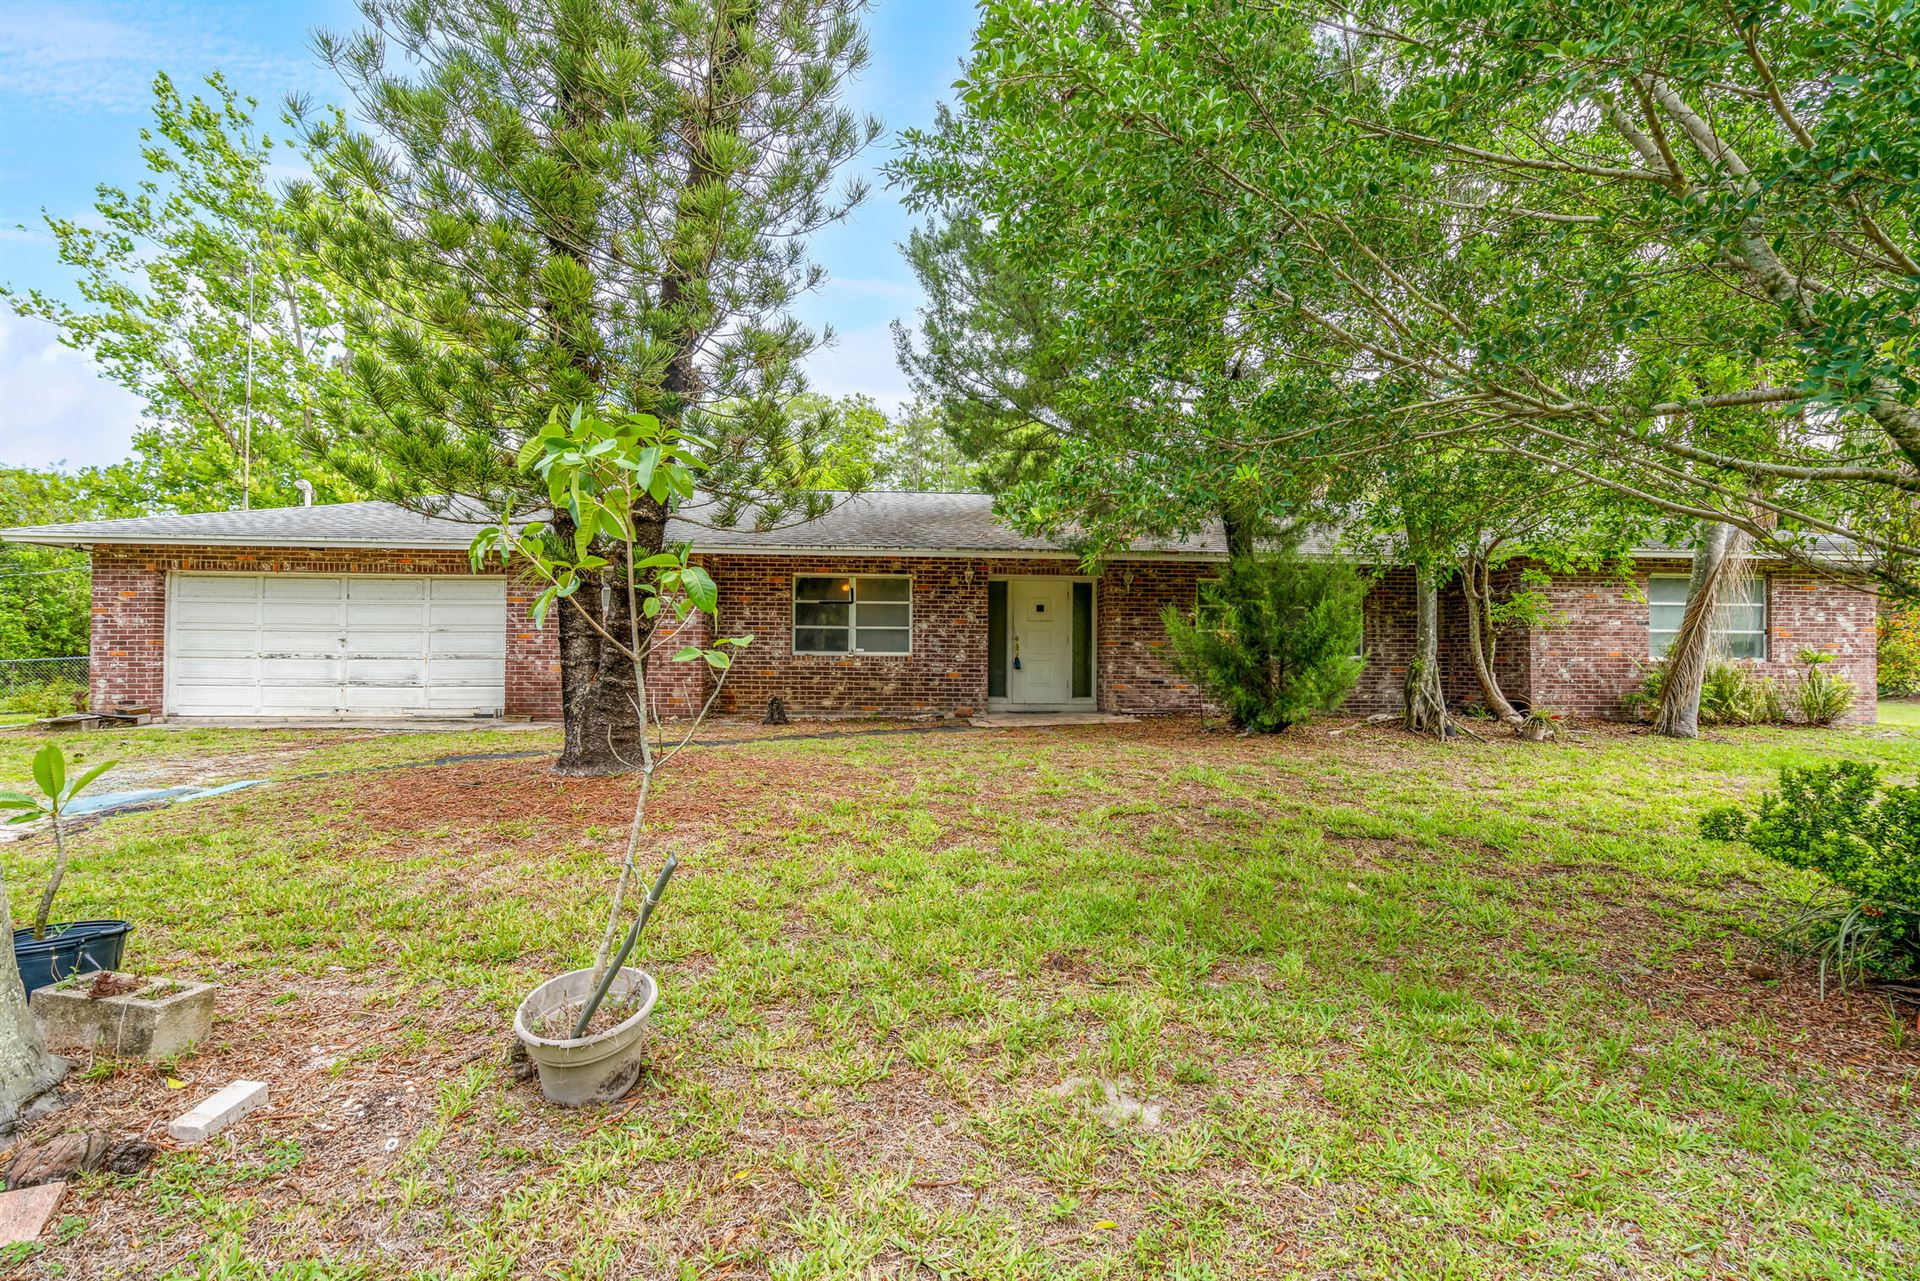 15707 Collecting Canal Road, Loxahatchee Groves, FL 33470 - MLS#: RX-10715800